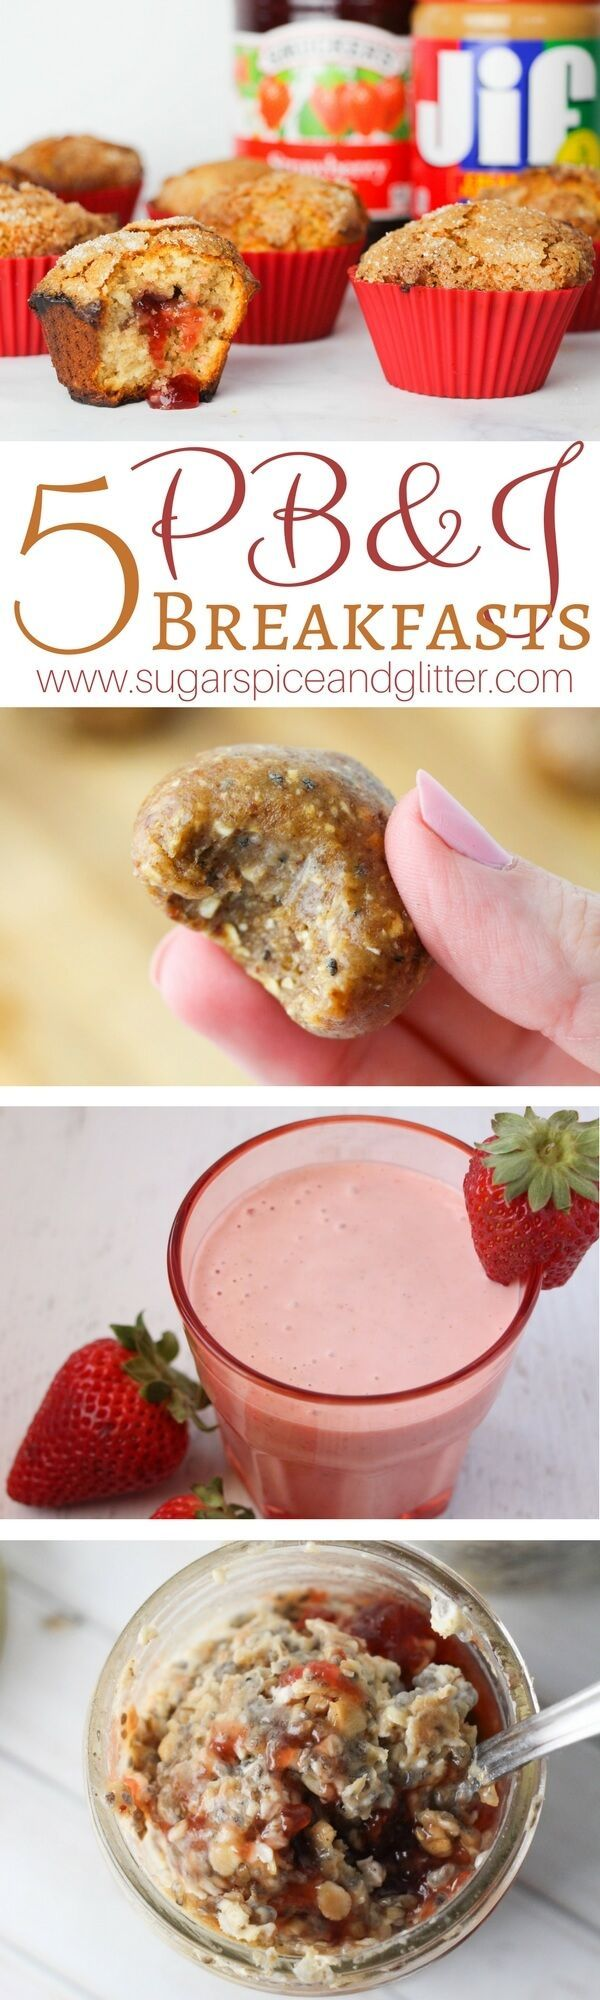 5 Delicious PB&J Breakfast Ideas that are quick, easy and can be taken on-the-go. PB&J Muffins, PB&J Energy Bites, PB&J Oatmeal Smoothie, PB&J French Toast Roll-ups and PB&J Overnight Oatmeal.